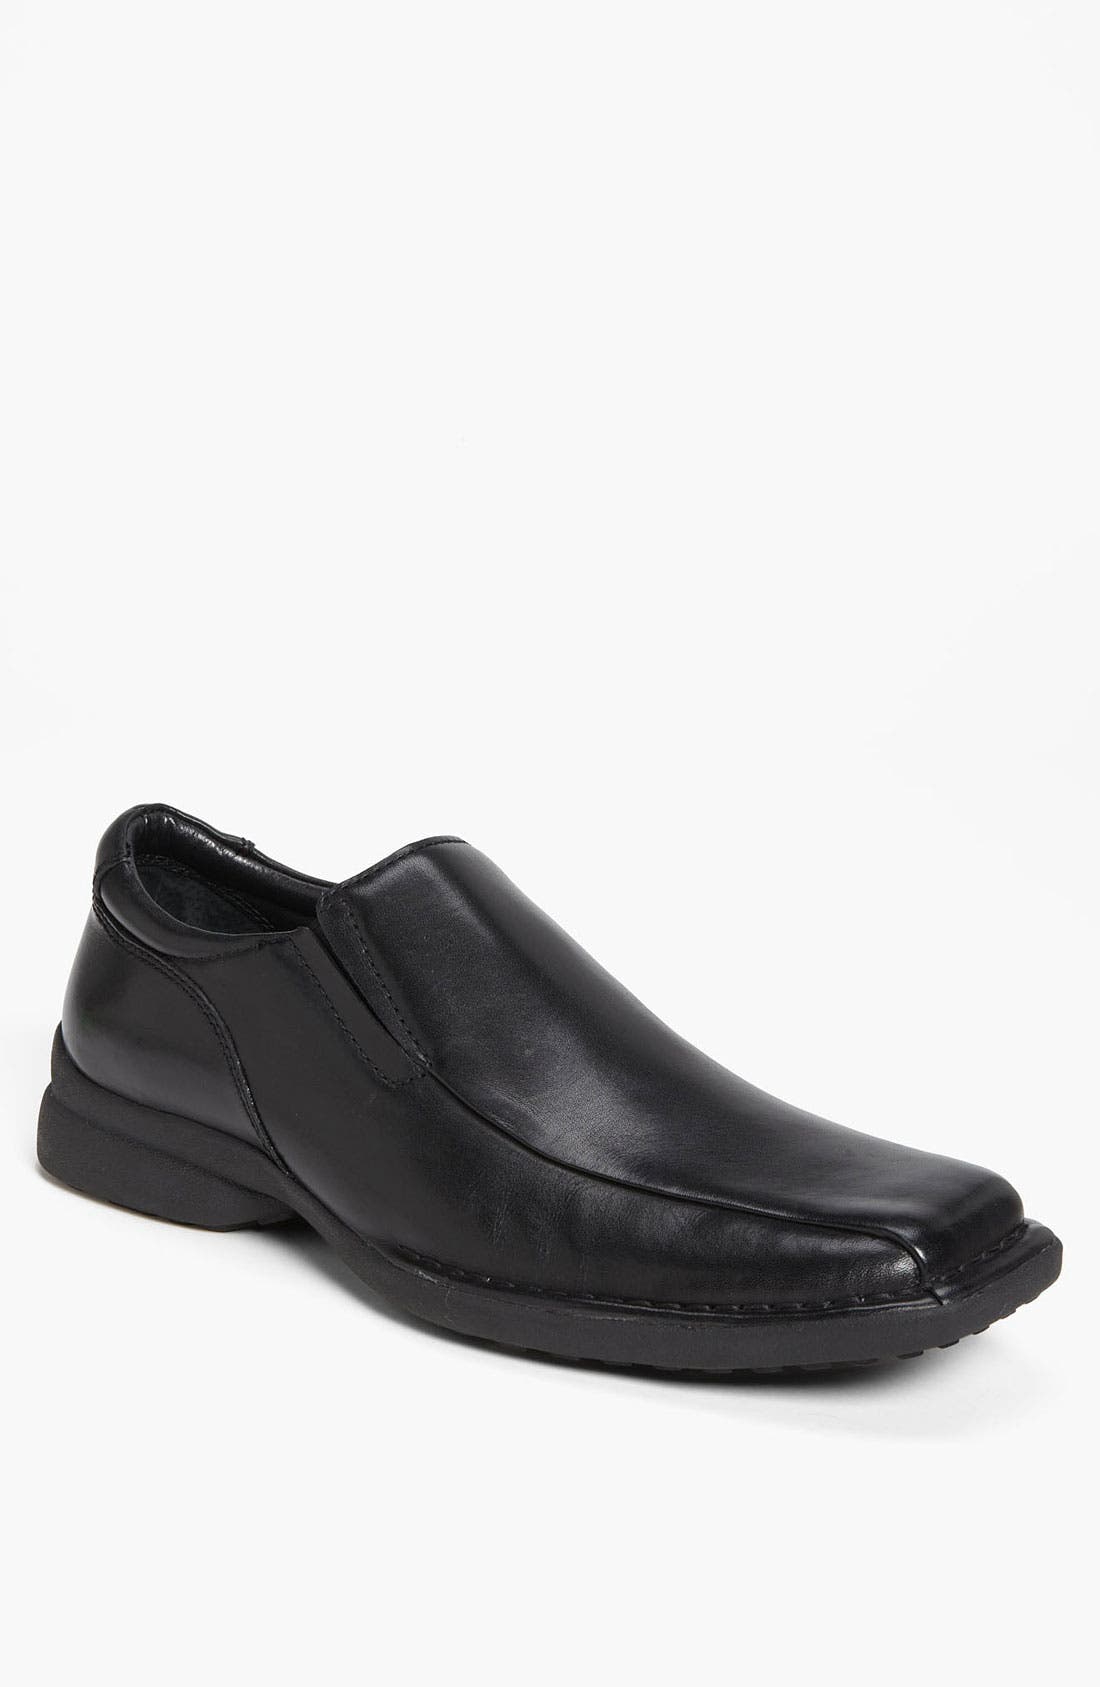 Alternate Image 1 Selected - Kenneth Cole Reaction 'Punchual' Slip-On